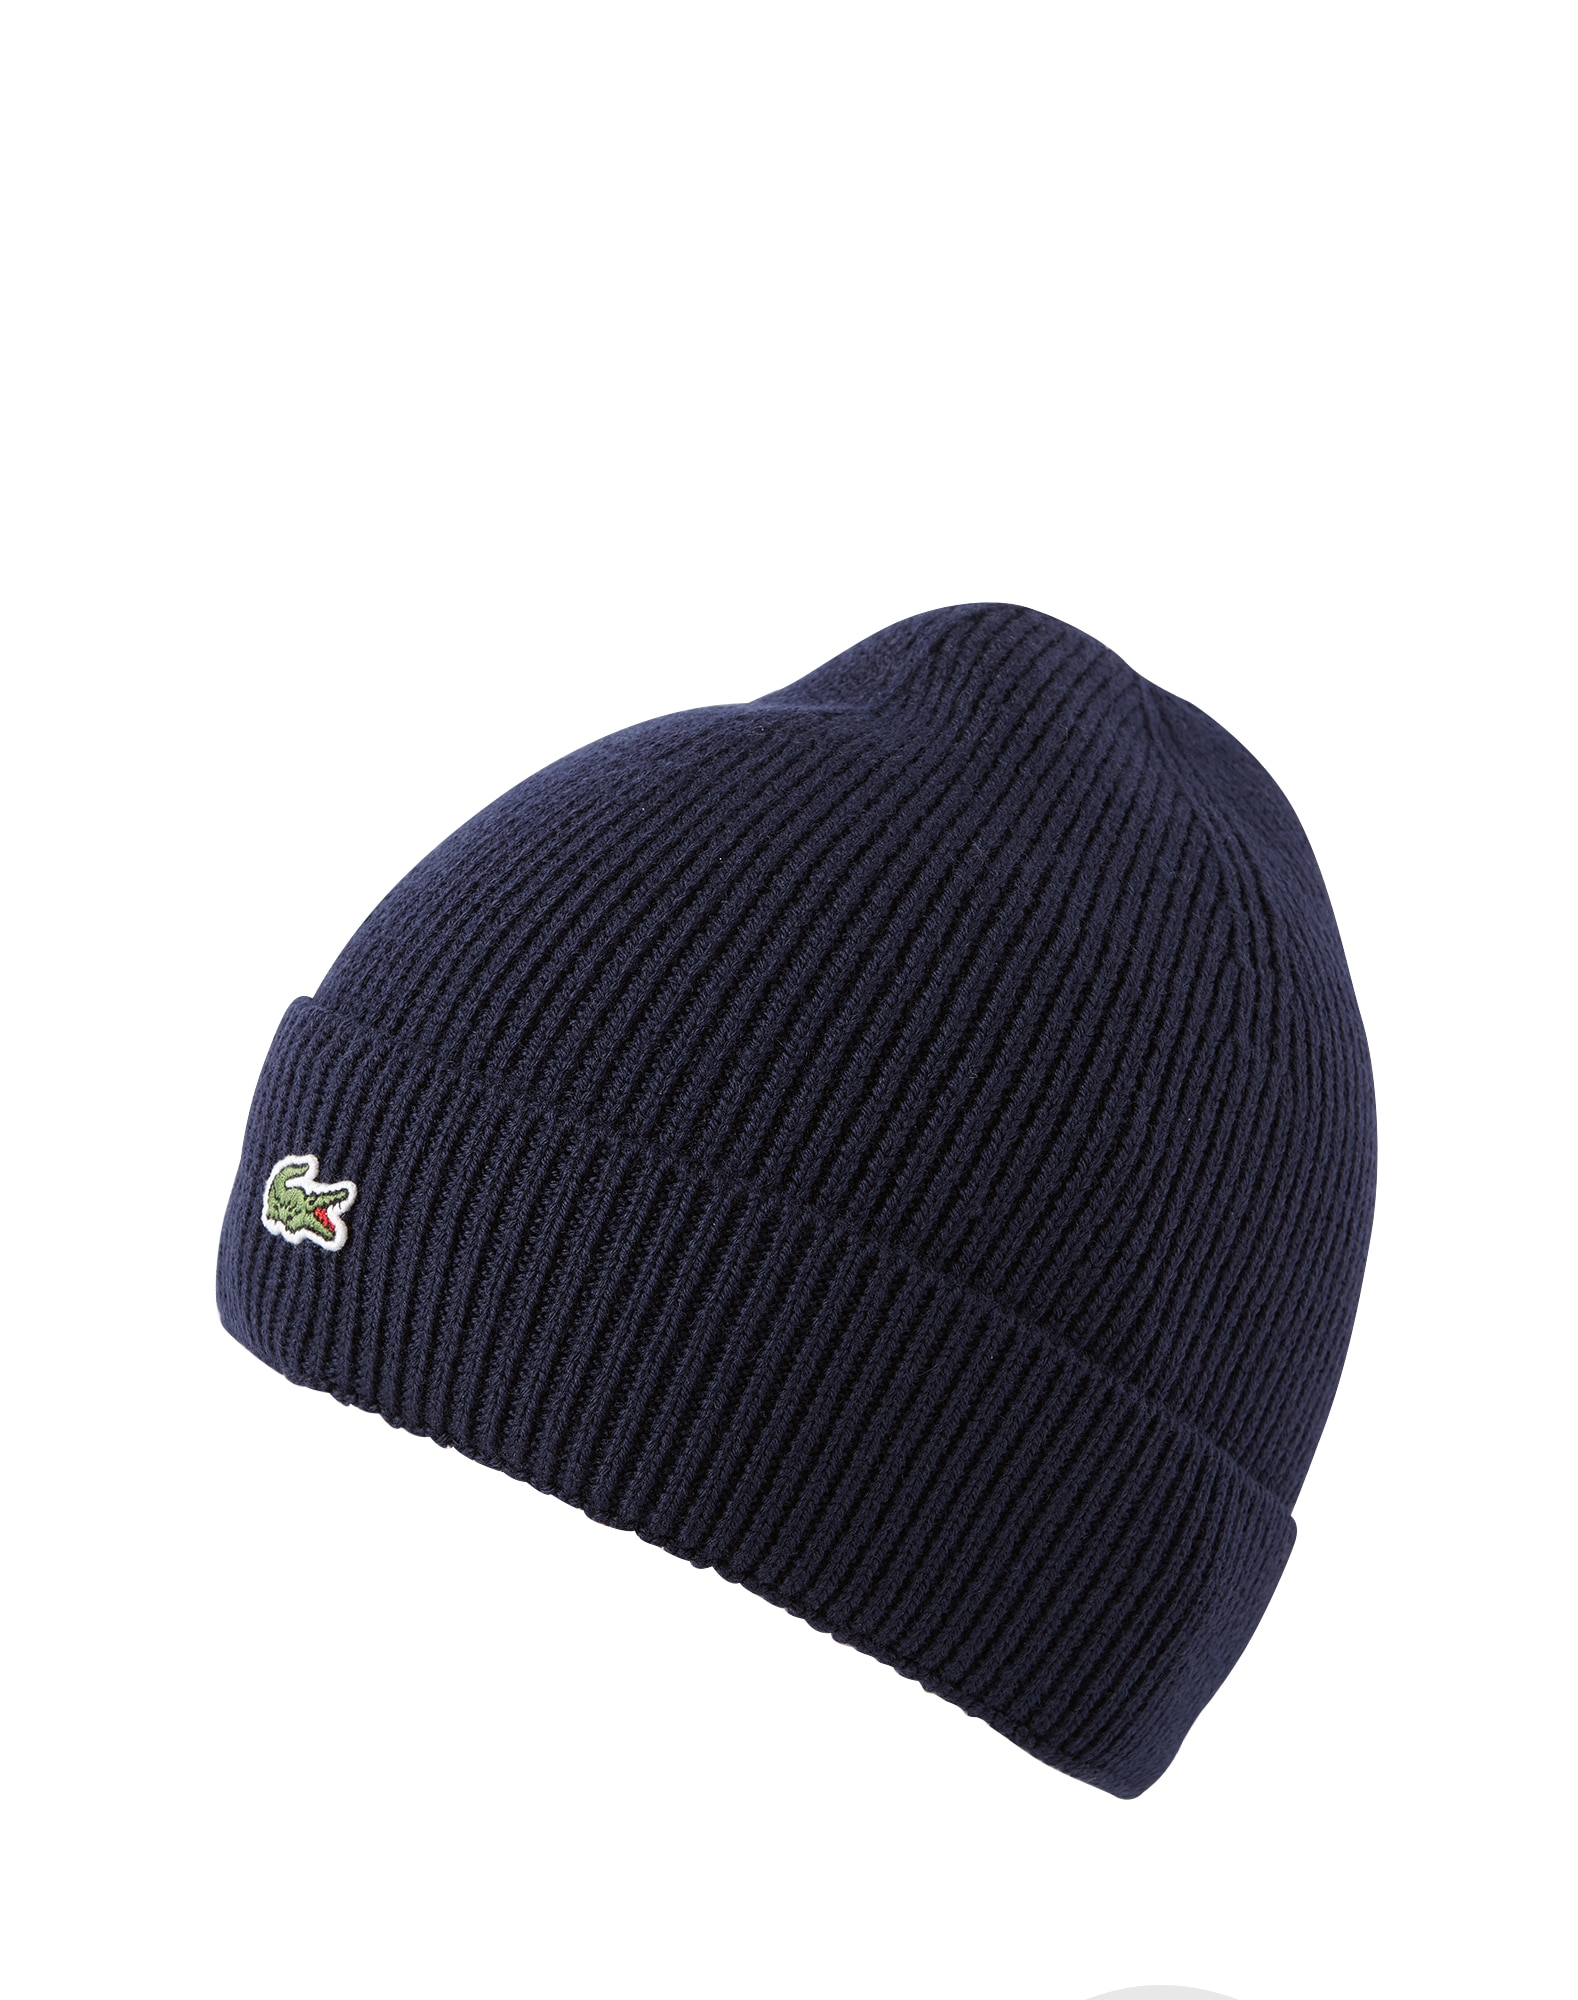 Lacoste Turned Edge Beanie